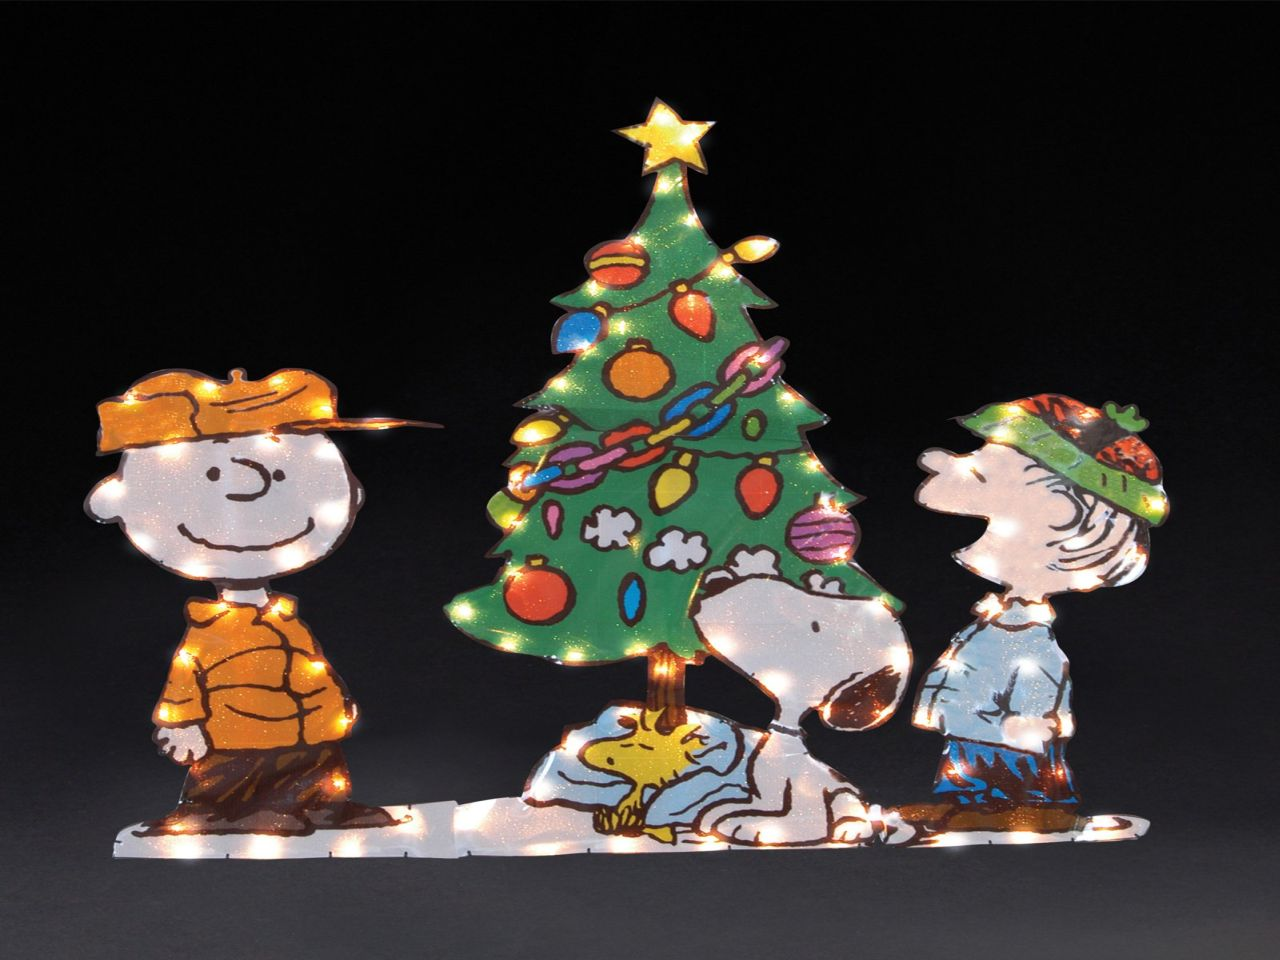 Charlie Brown Christmas Wallpaper Wallpaper Mansion 1280x960